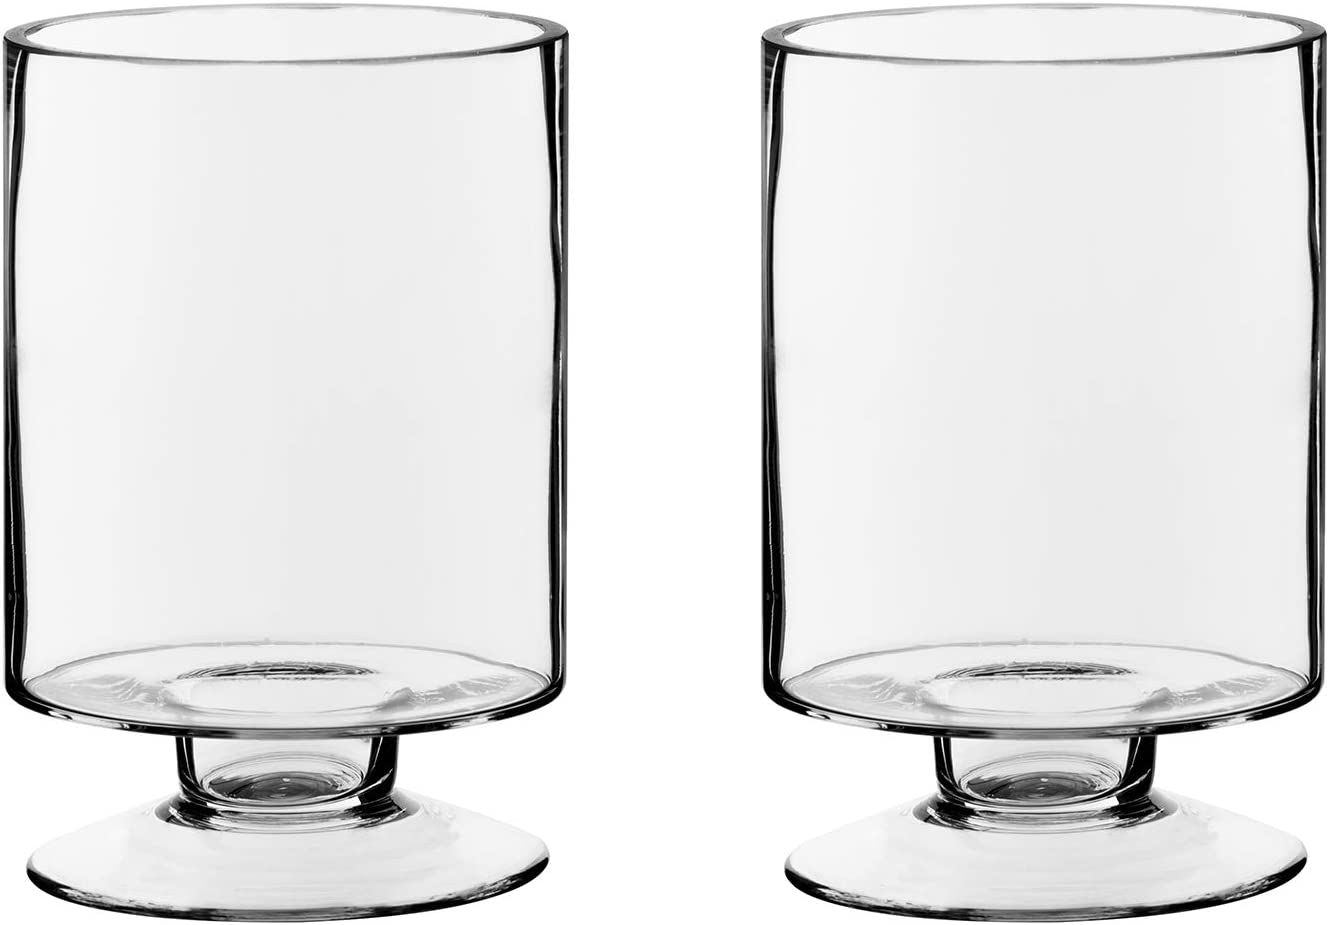 "CYS EXCEL Glass Hurricane Pillar Candle Holders (H:6"" W:3.75"", Pack of 2) 